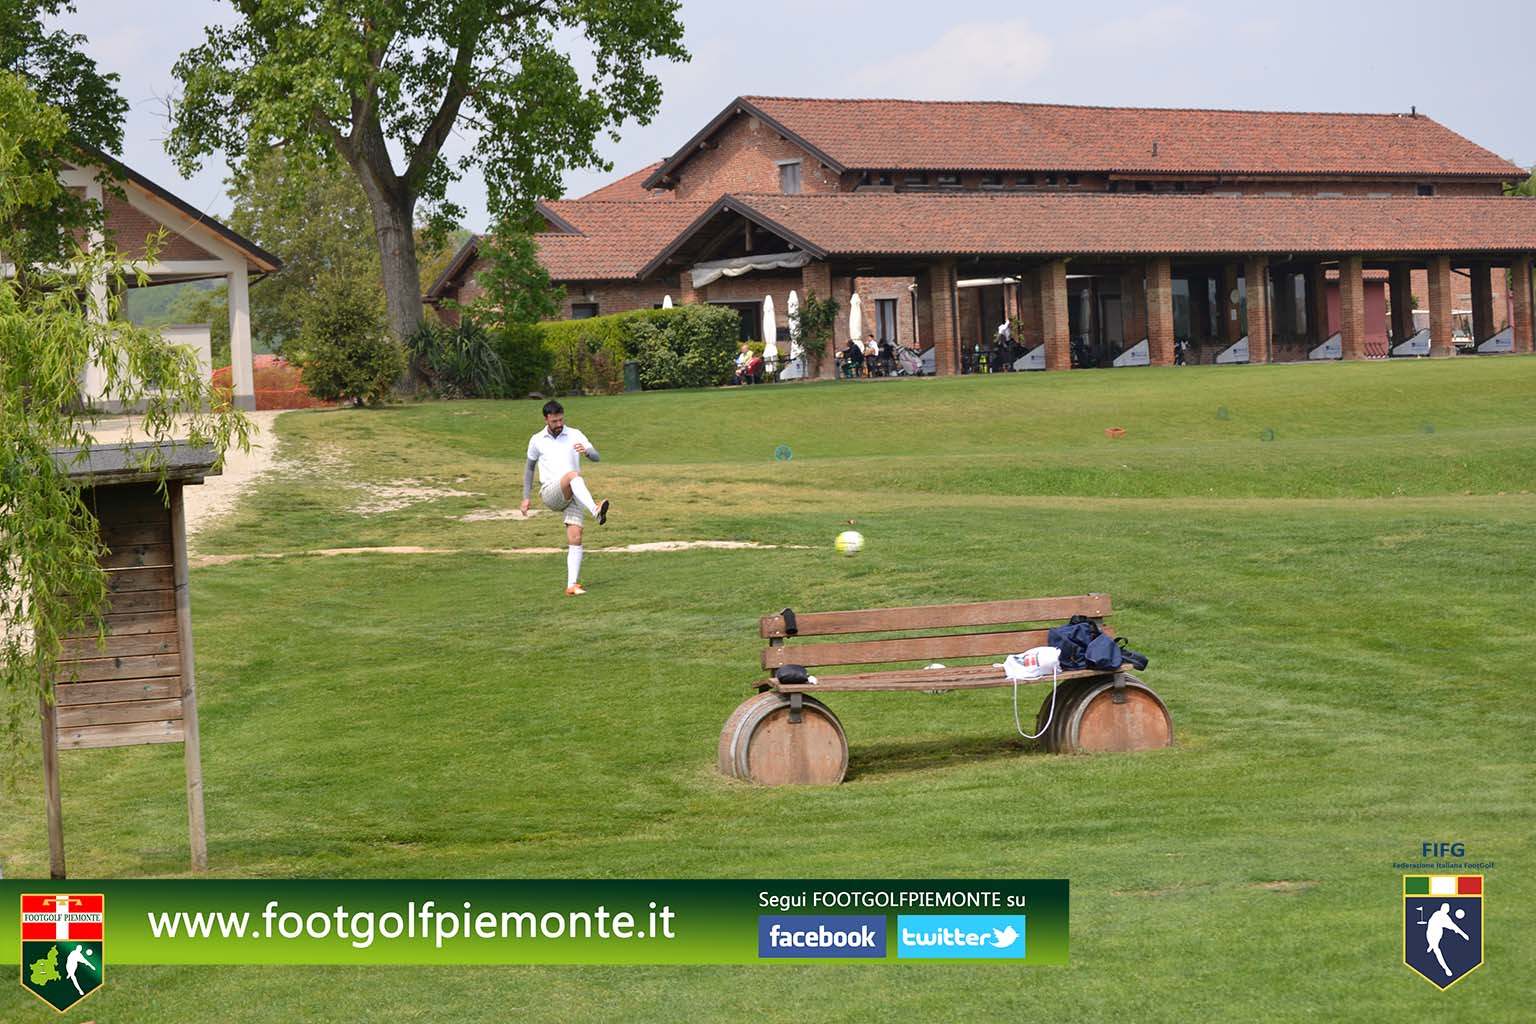 FOTO 9 Regions' Cup Footgolf Piemonte 2016 Golf Città di Asti (At) 30apr16-22